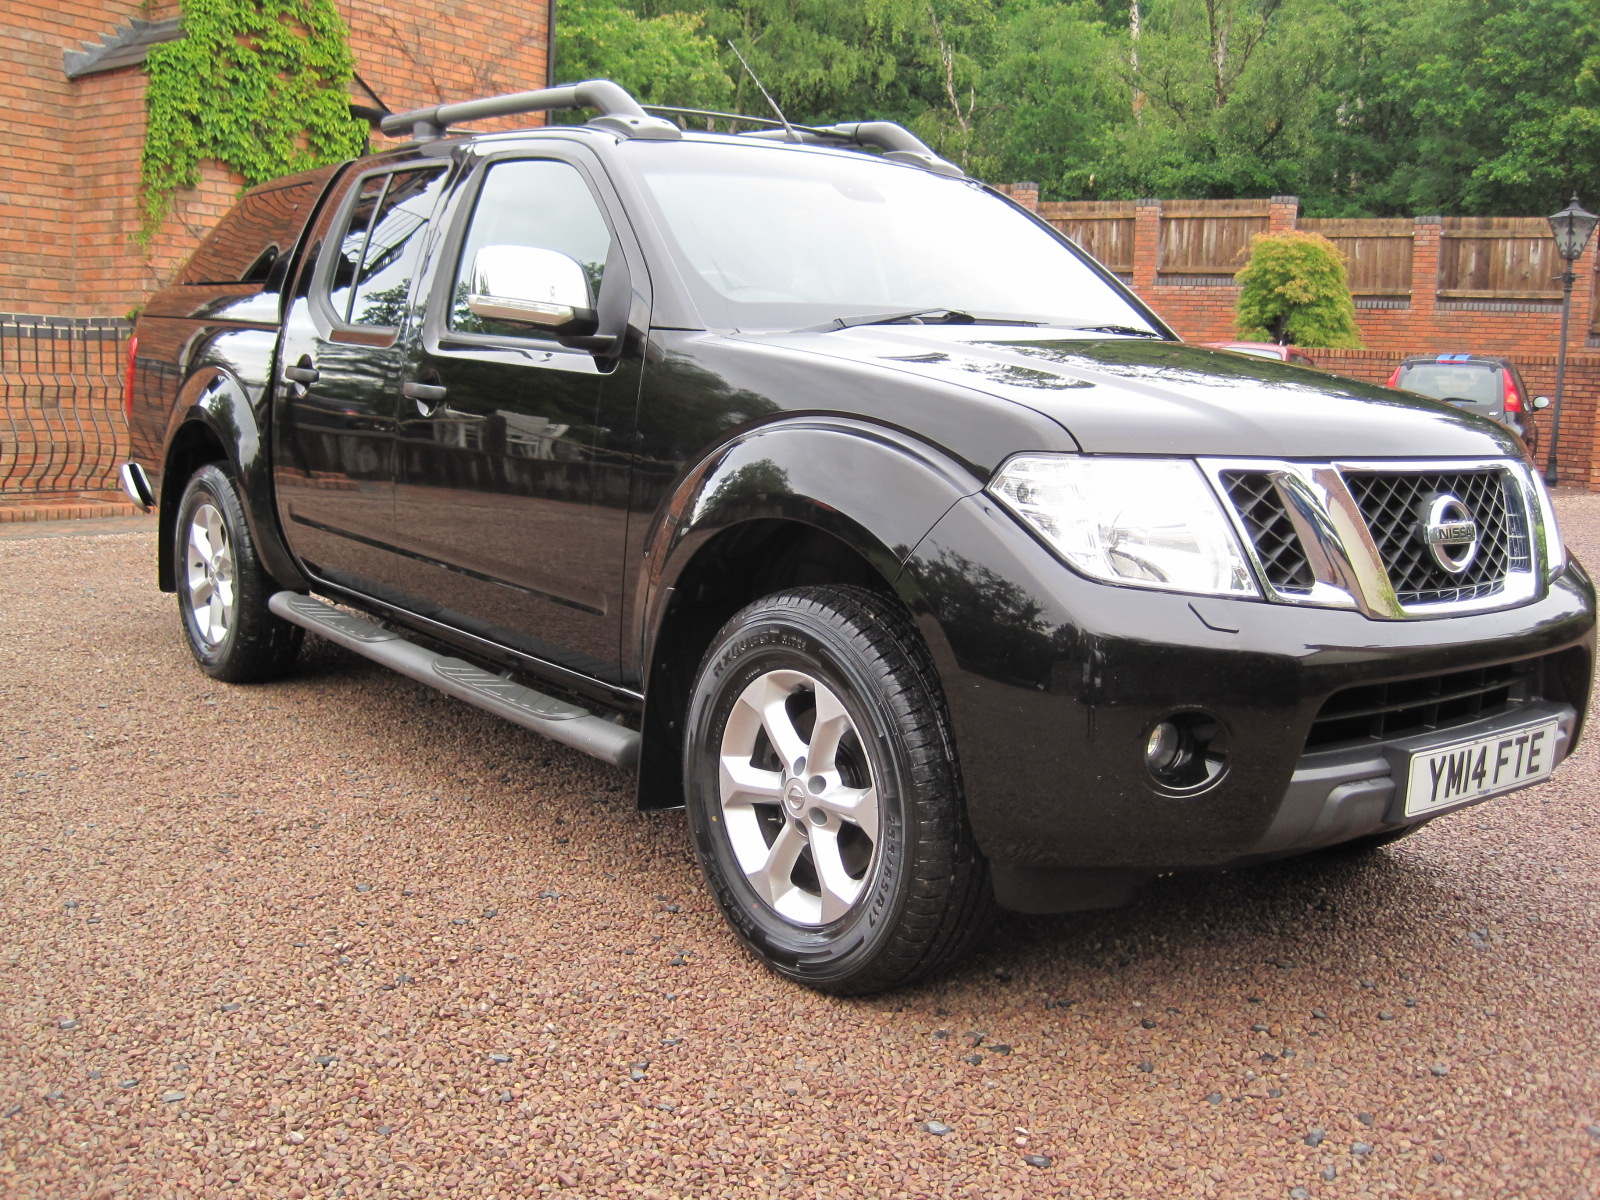 2014 14 Nissan Navara 2.5 dCi Tekna Double Cab Pickup 4dr ABSOLUTELY PRISTINE CONDITION! NO VAT! ONLY USED AS A CAR!